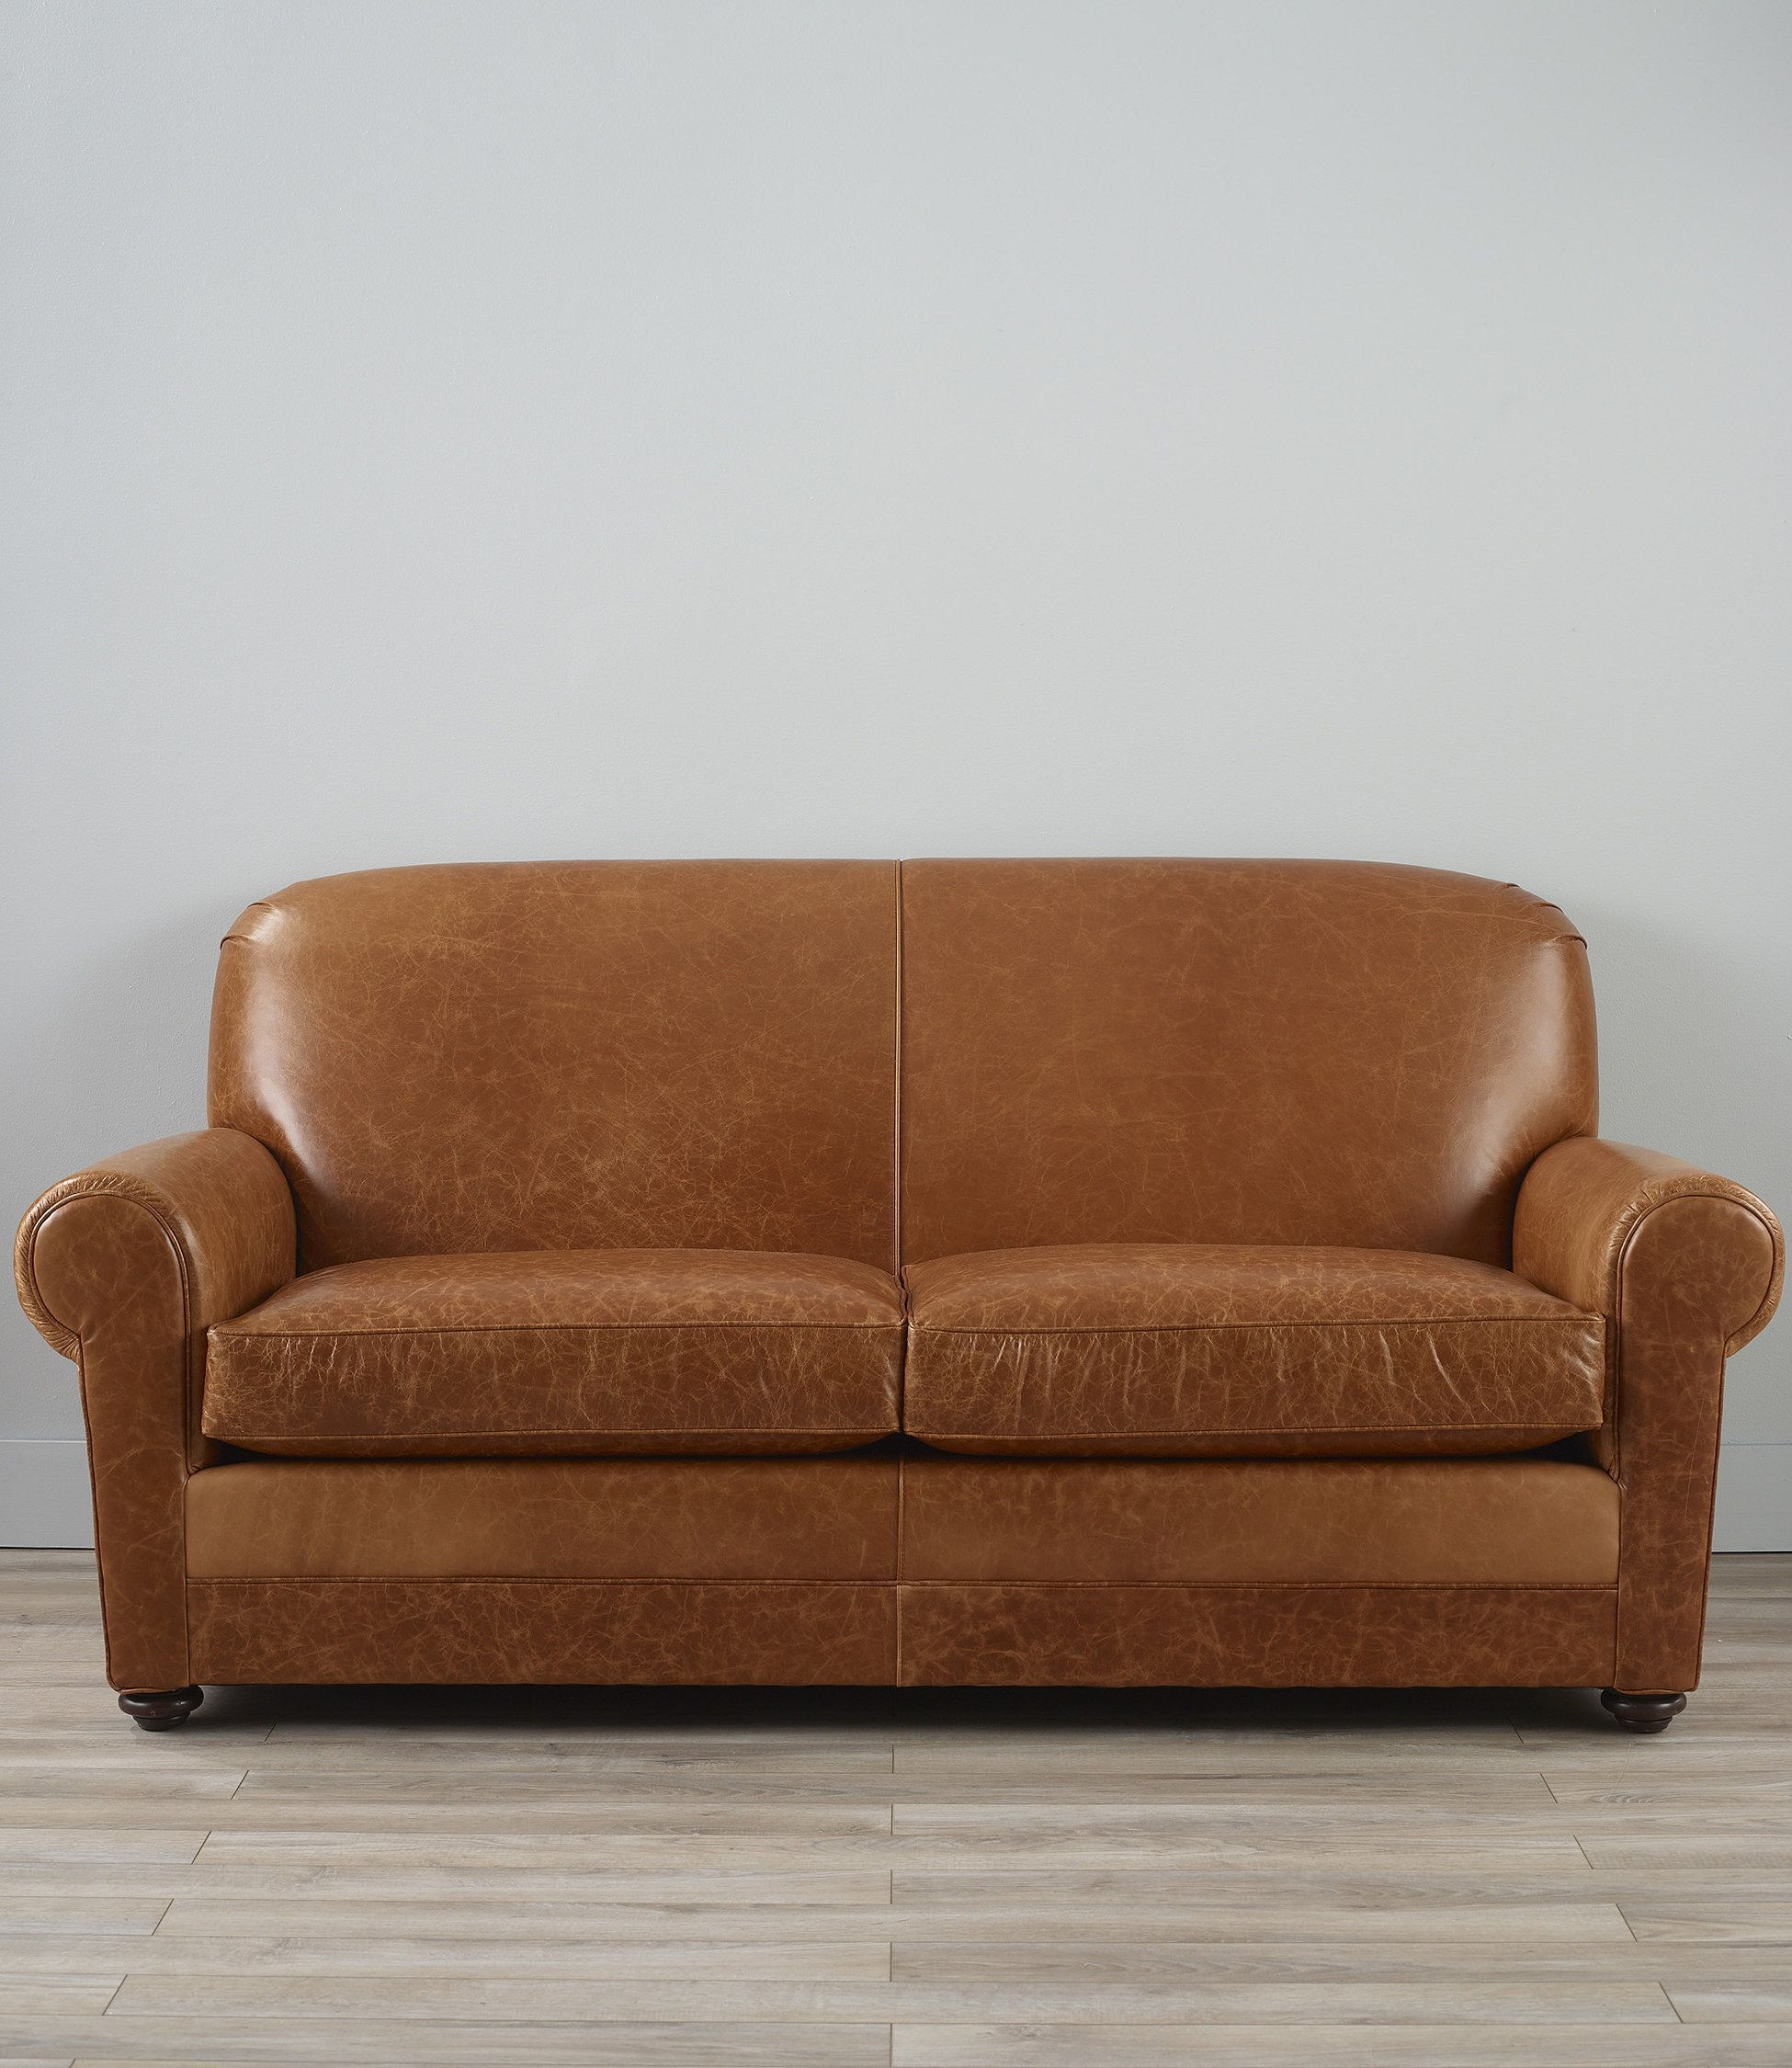 L Bean Leather Lodge Sleeper Sofa